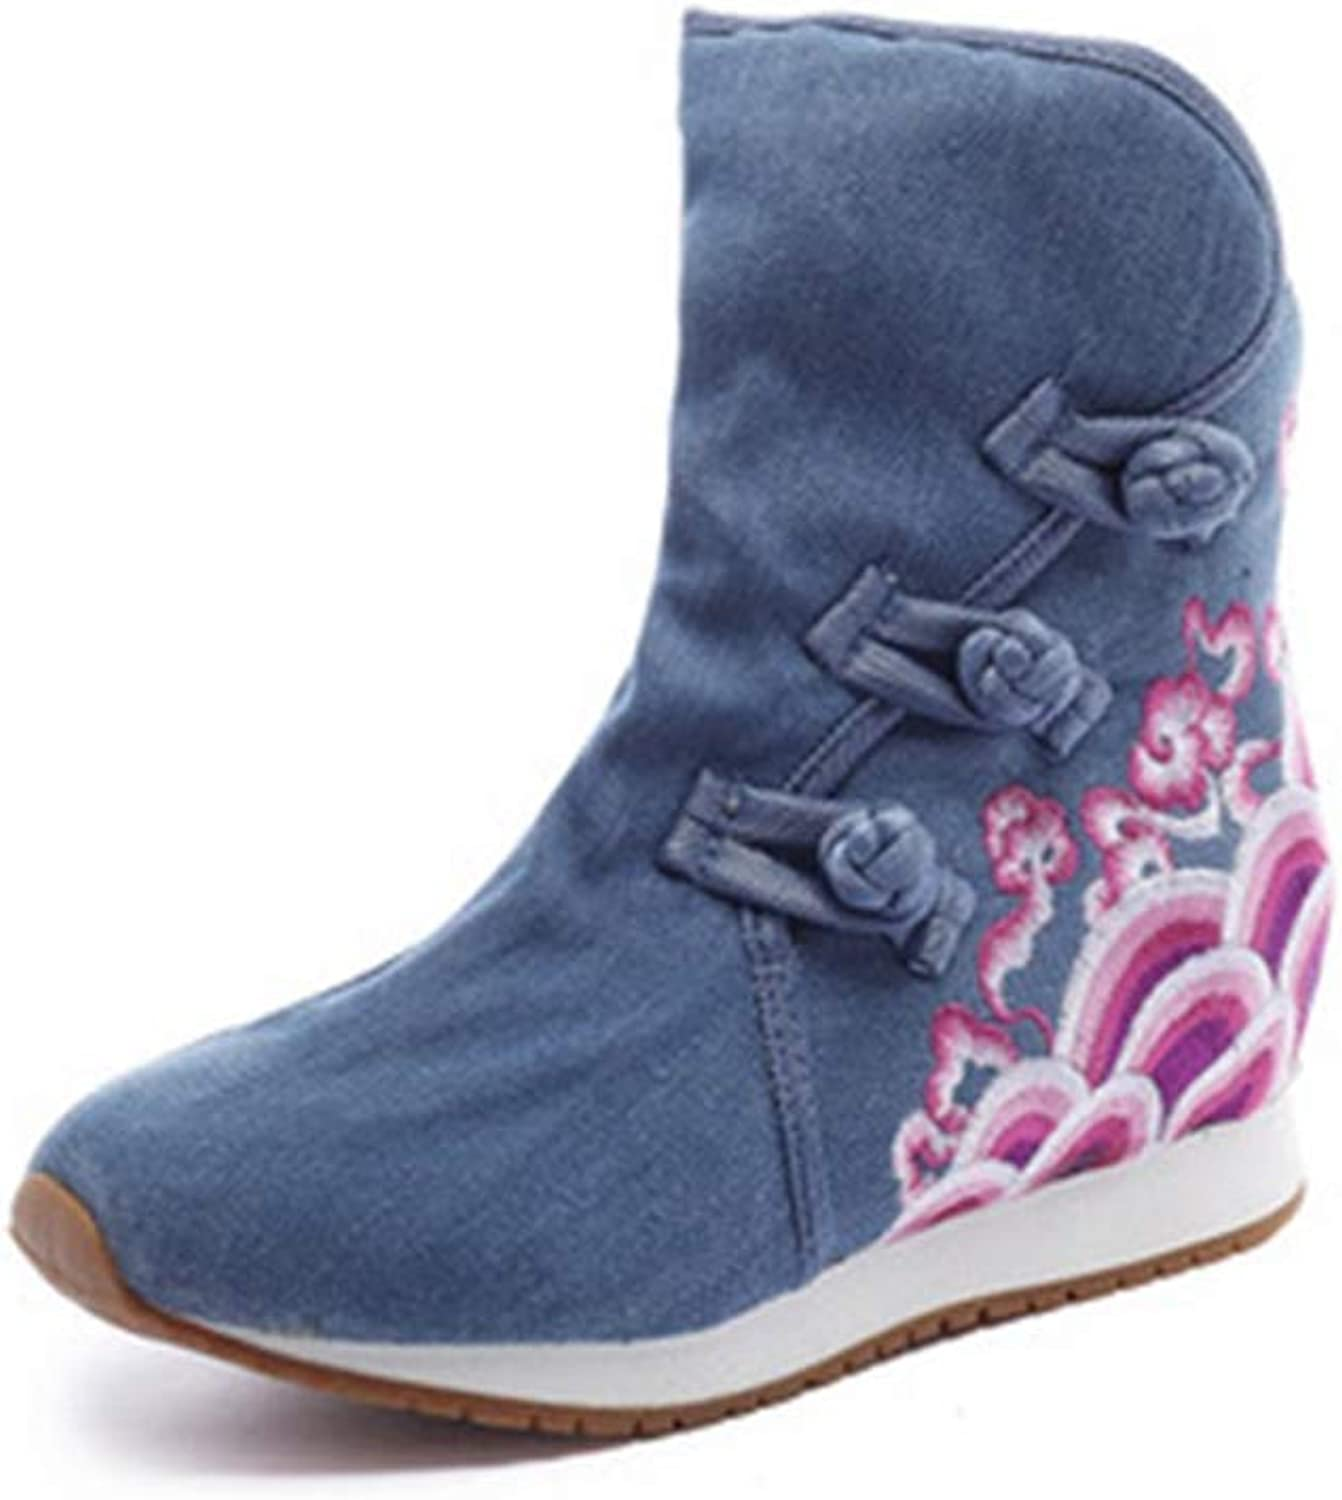 Elsa Wilcox Women Retro Round Toe Buckle Bootie Mid Heel Dress Short Boots Embroidered Flowers Wedge Ankle Boots